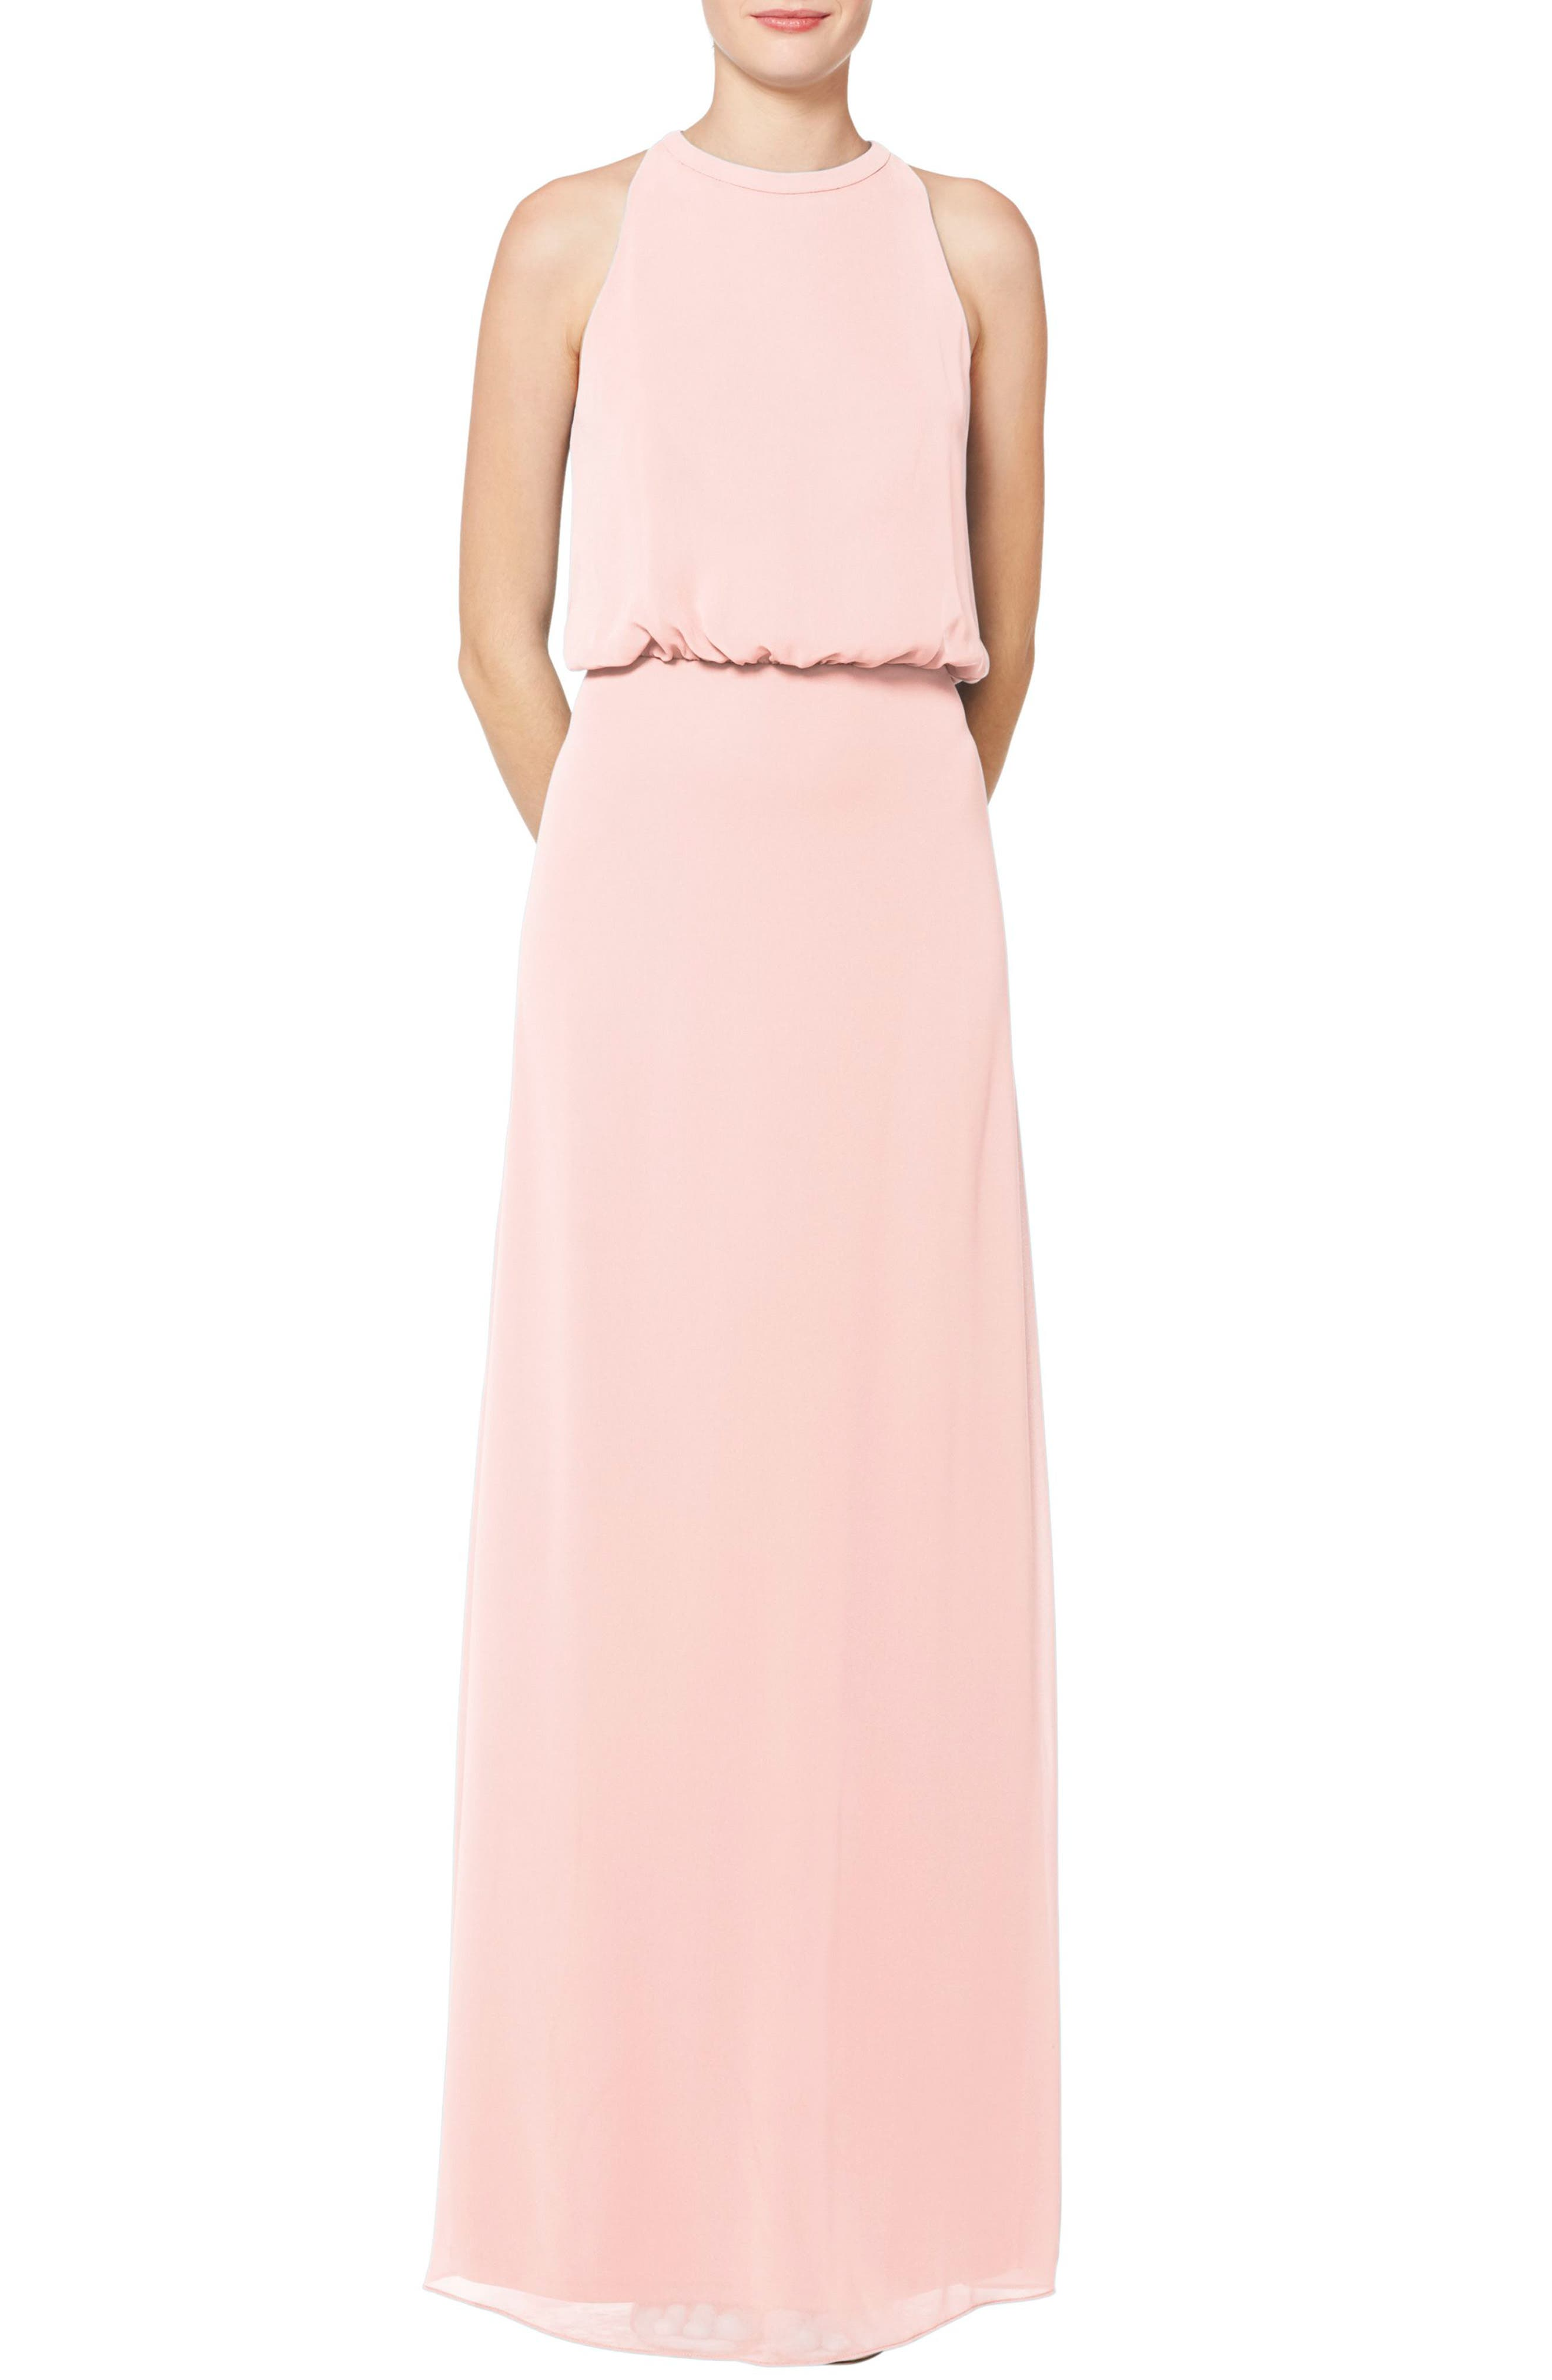 Cut with a high halter-style neck, this blouson chiffon gown provides a flattering fit for most and the opportunity to flaunt silky shoulders. Style Name:#levkoff Halter Neck Blouson Bodice Chiffon Evening Gown. Style Number: 5785829. Available in stores.